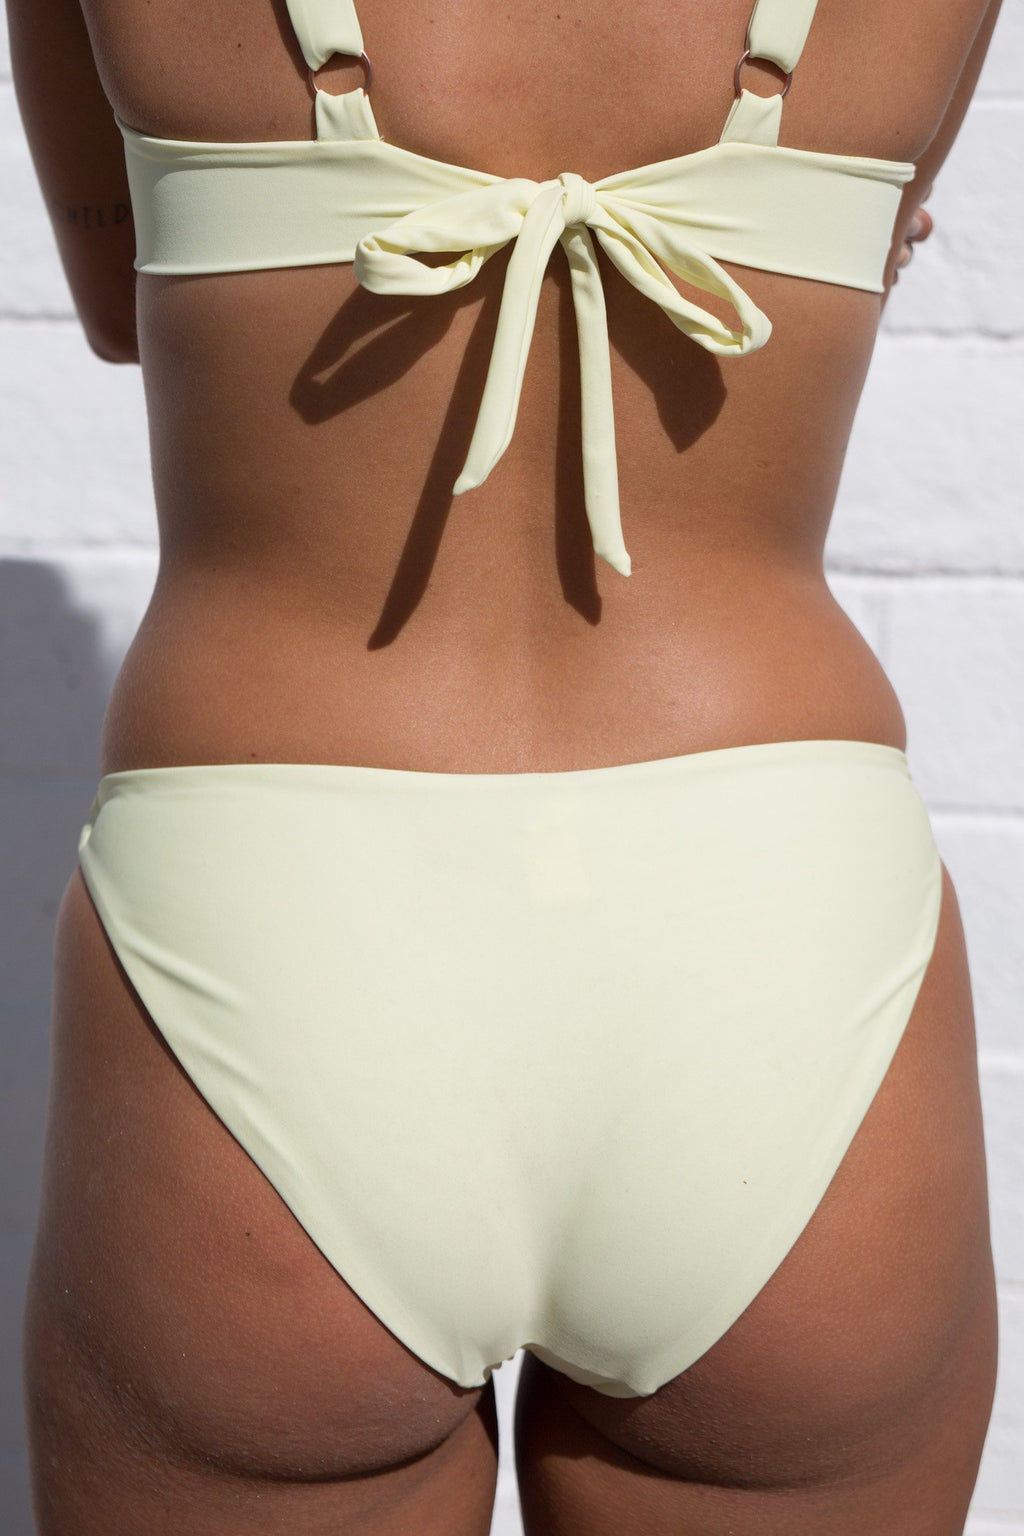 Ete Swimwear Ete X Matilda - Seaside Bottoms (Sunset) - Nomads Cove